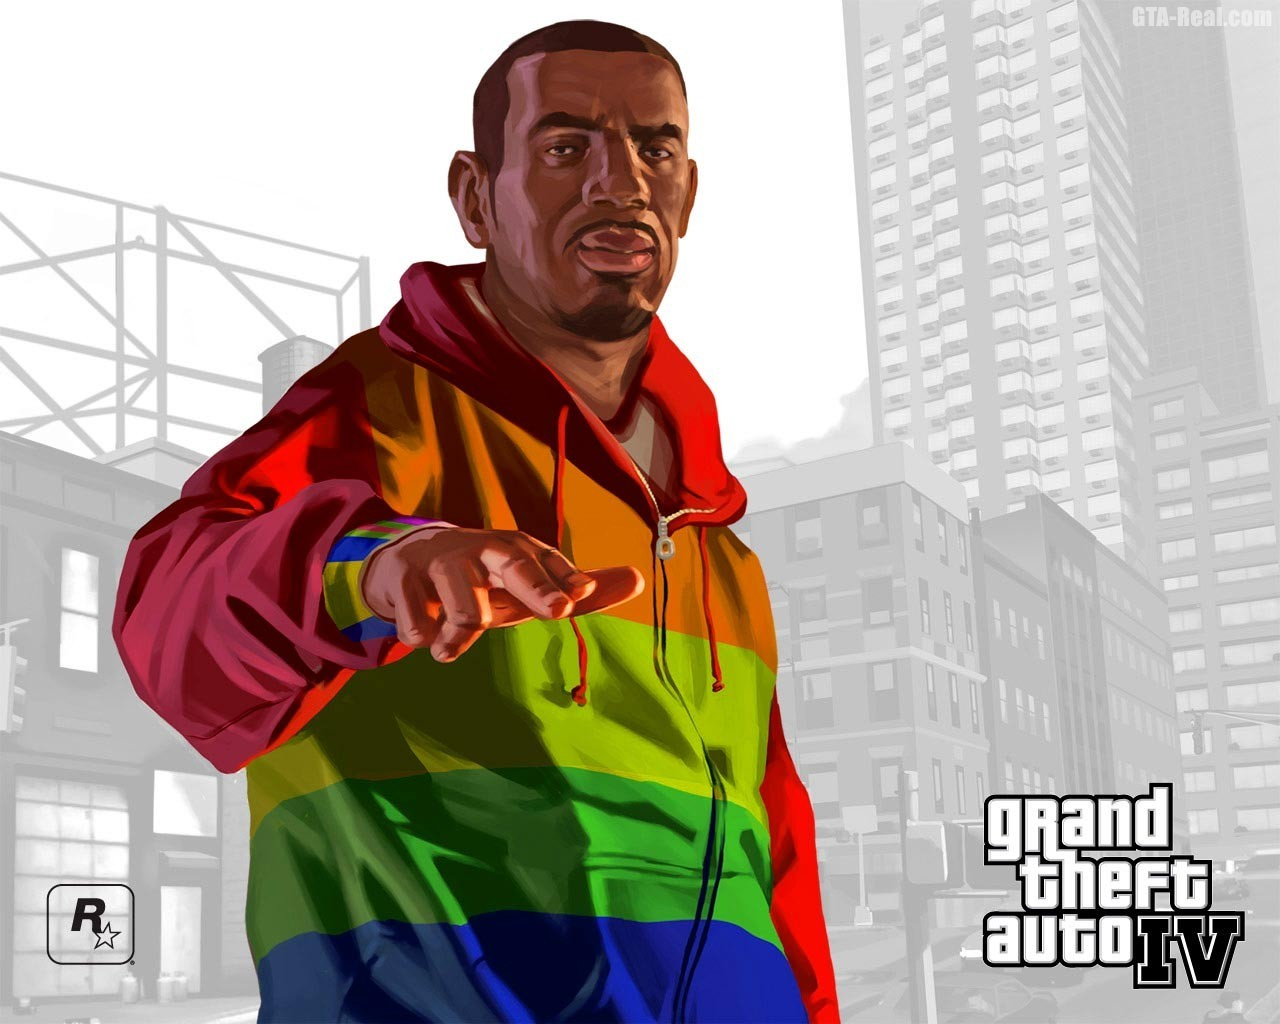 black people grand theft HD Wallpaper